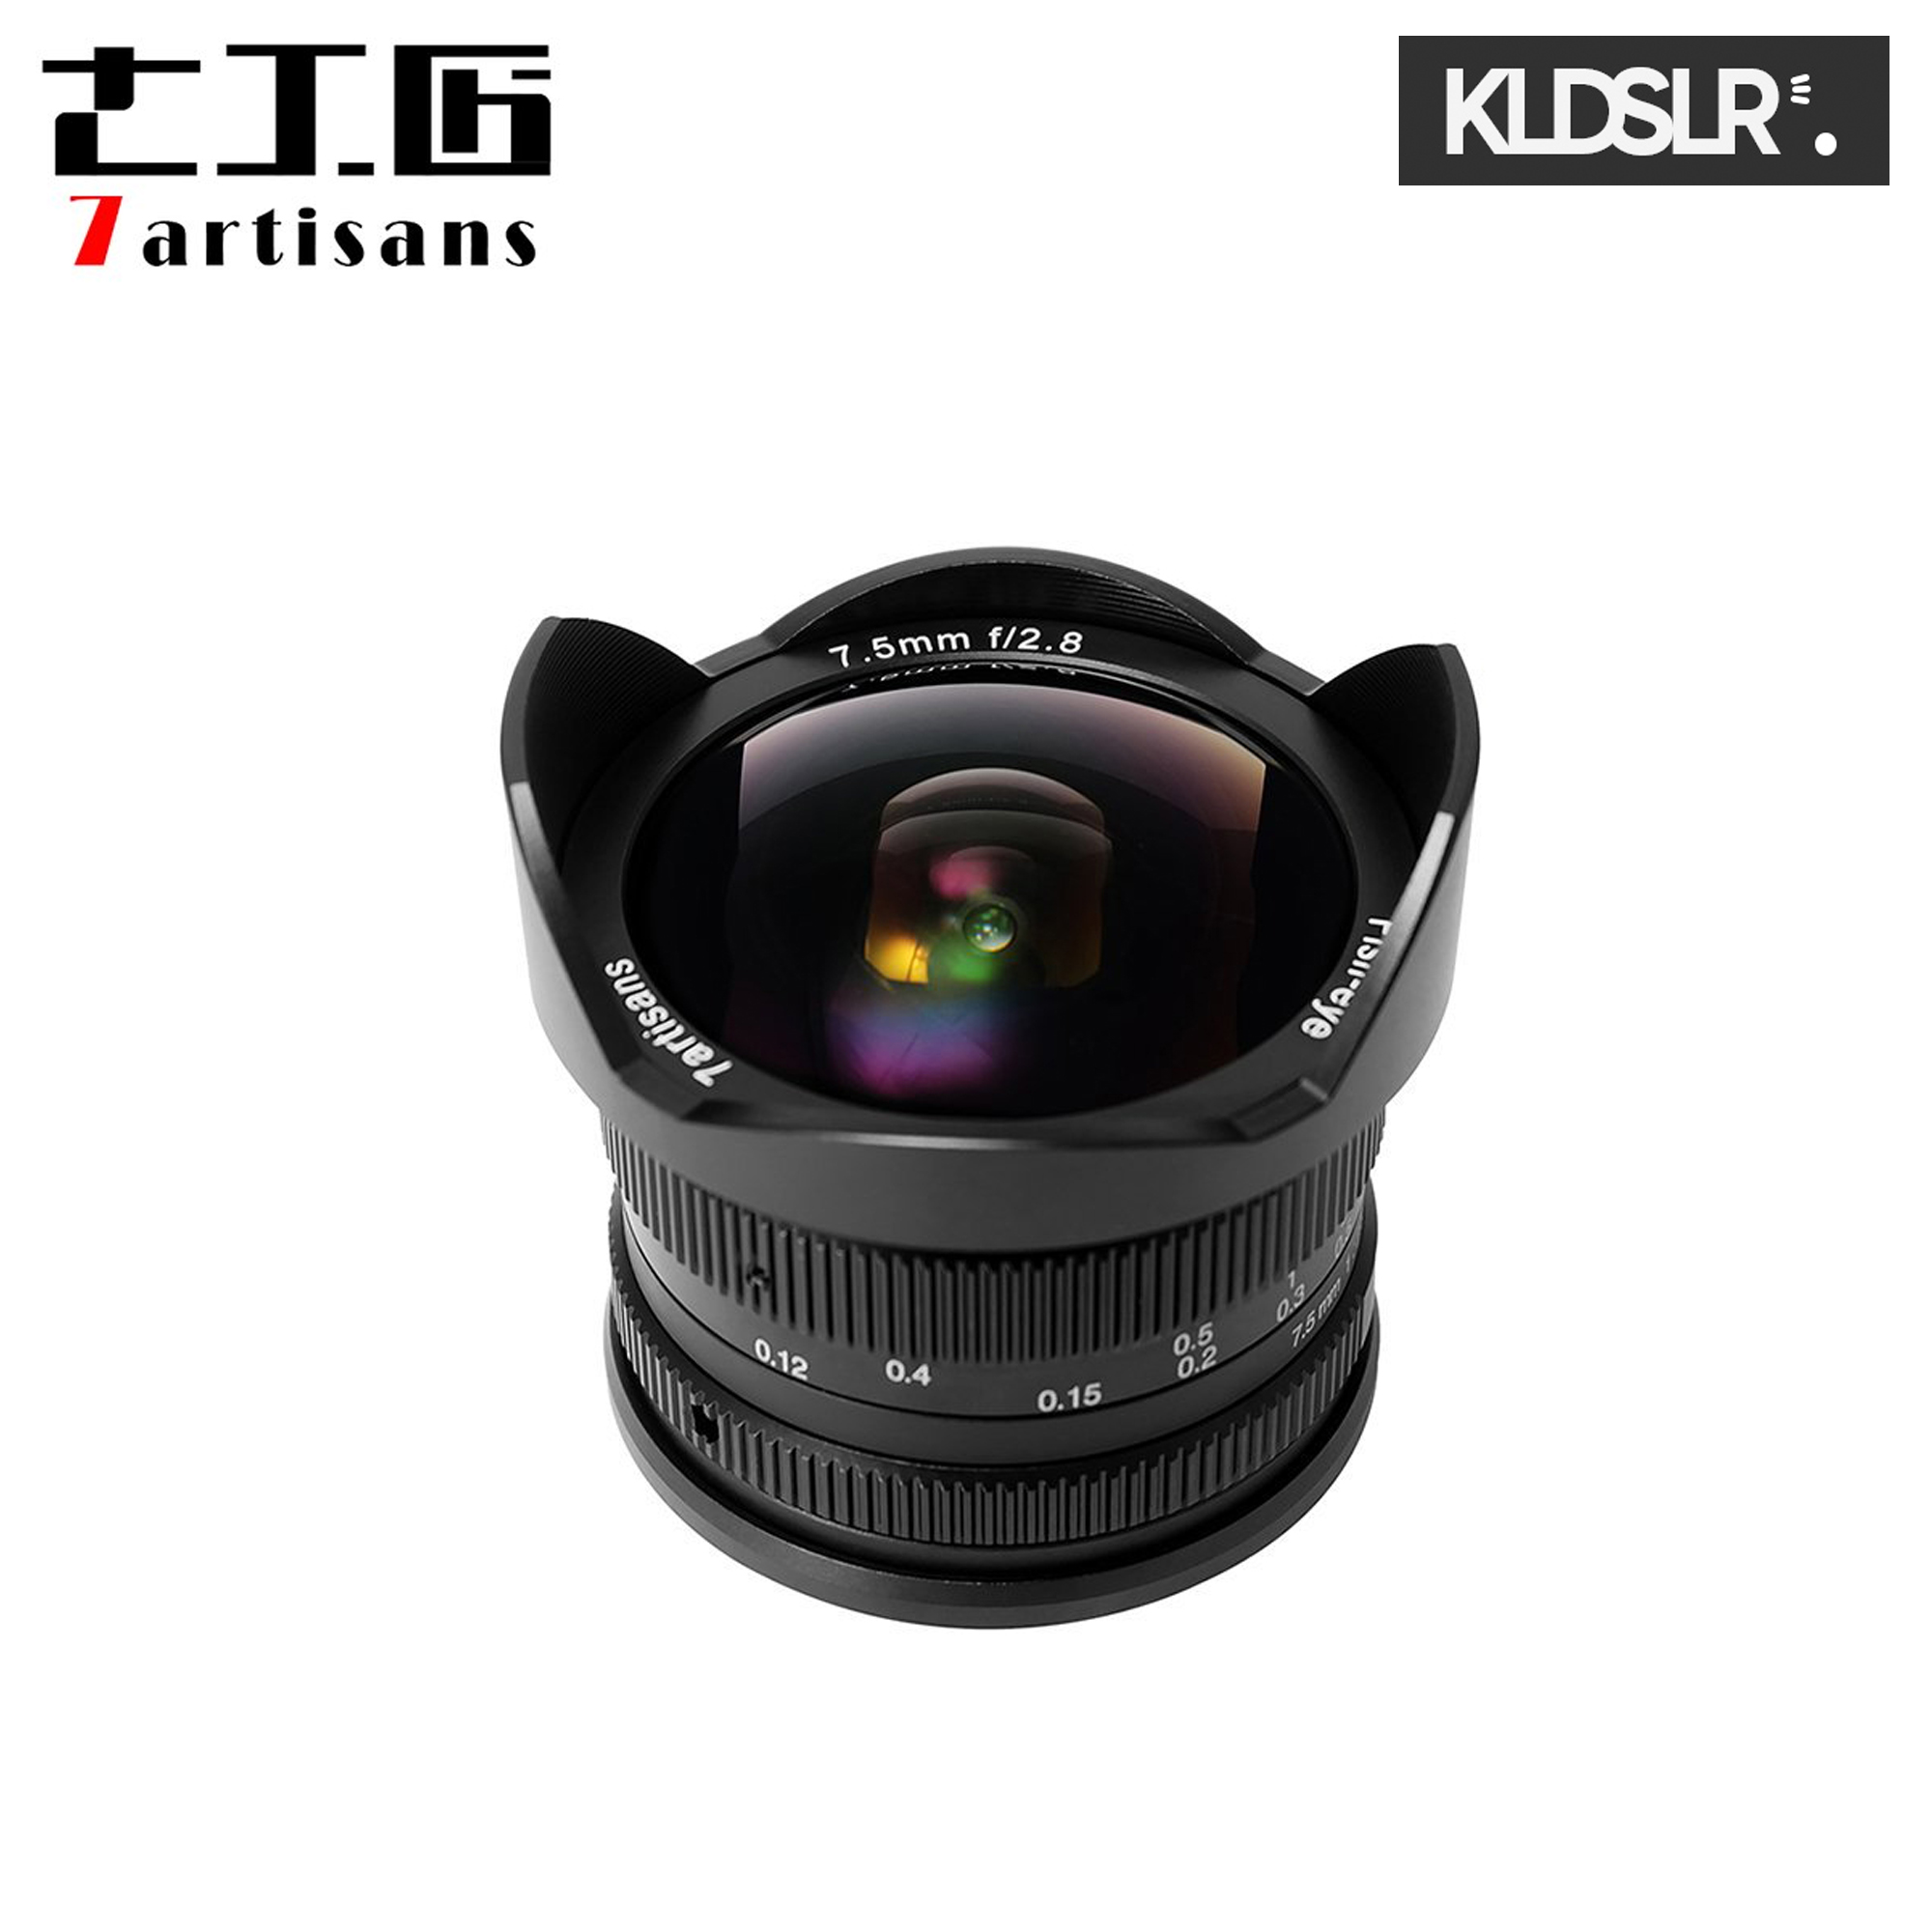 (Clearance) 7artisans Photoelectric 7.5mm F2.8 Fisheye Lens for Sony